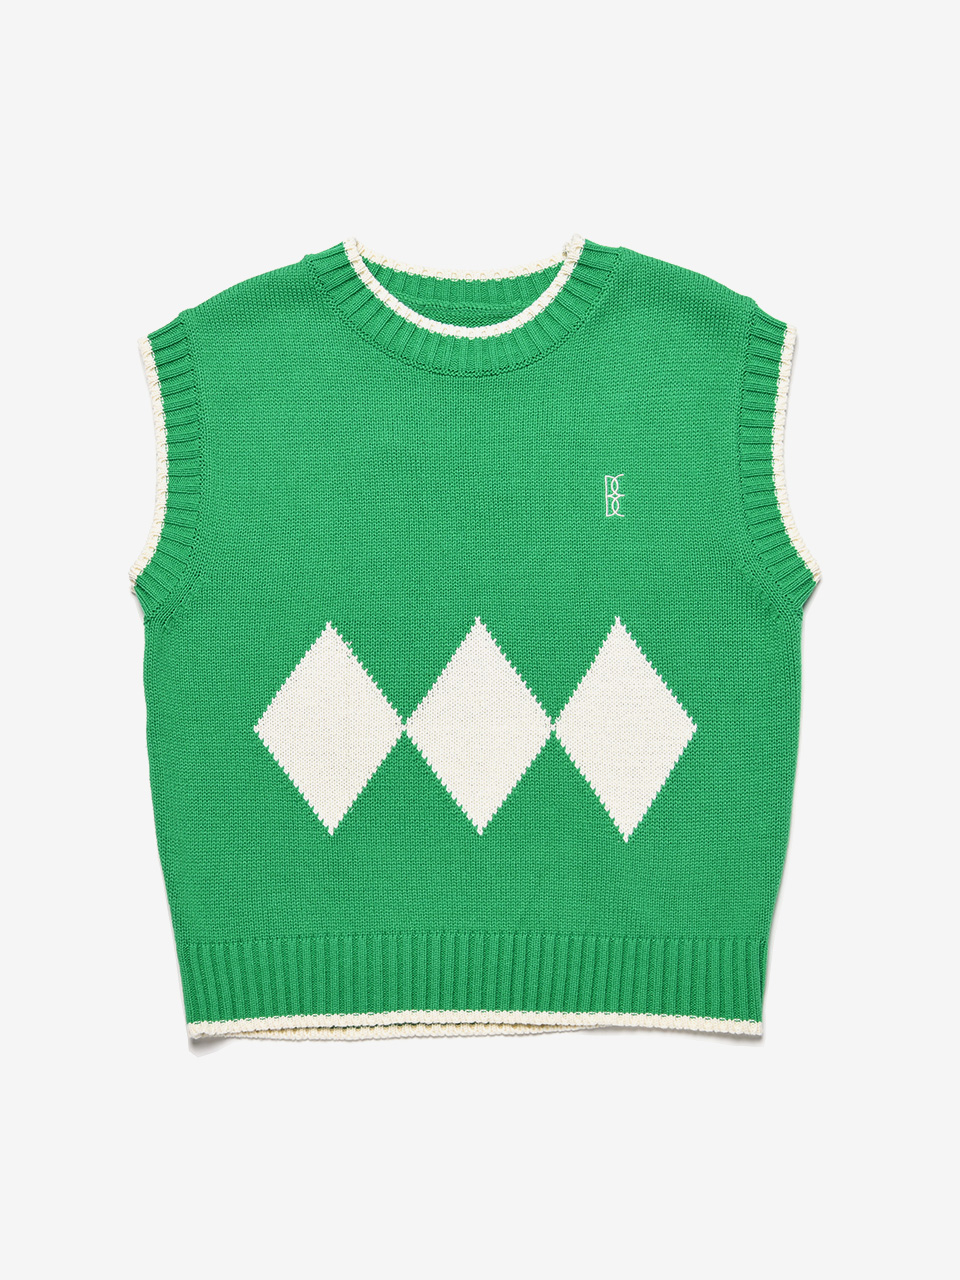 BENSIMON ARGYLE KNIT VEST (FOR WOMEN) - GREEN